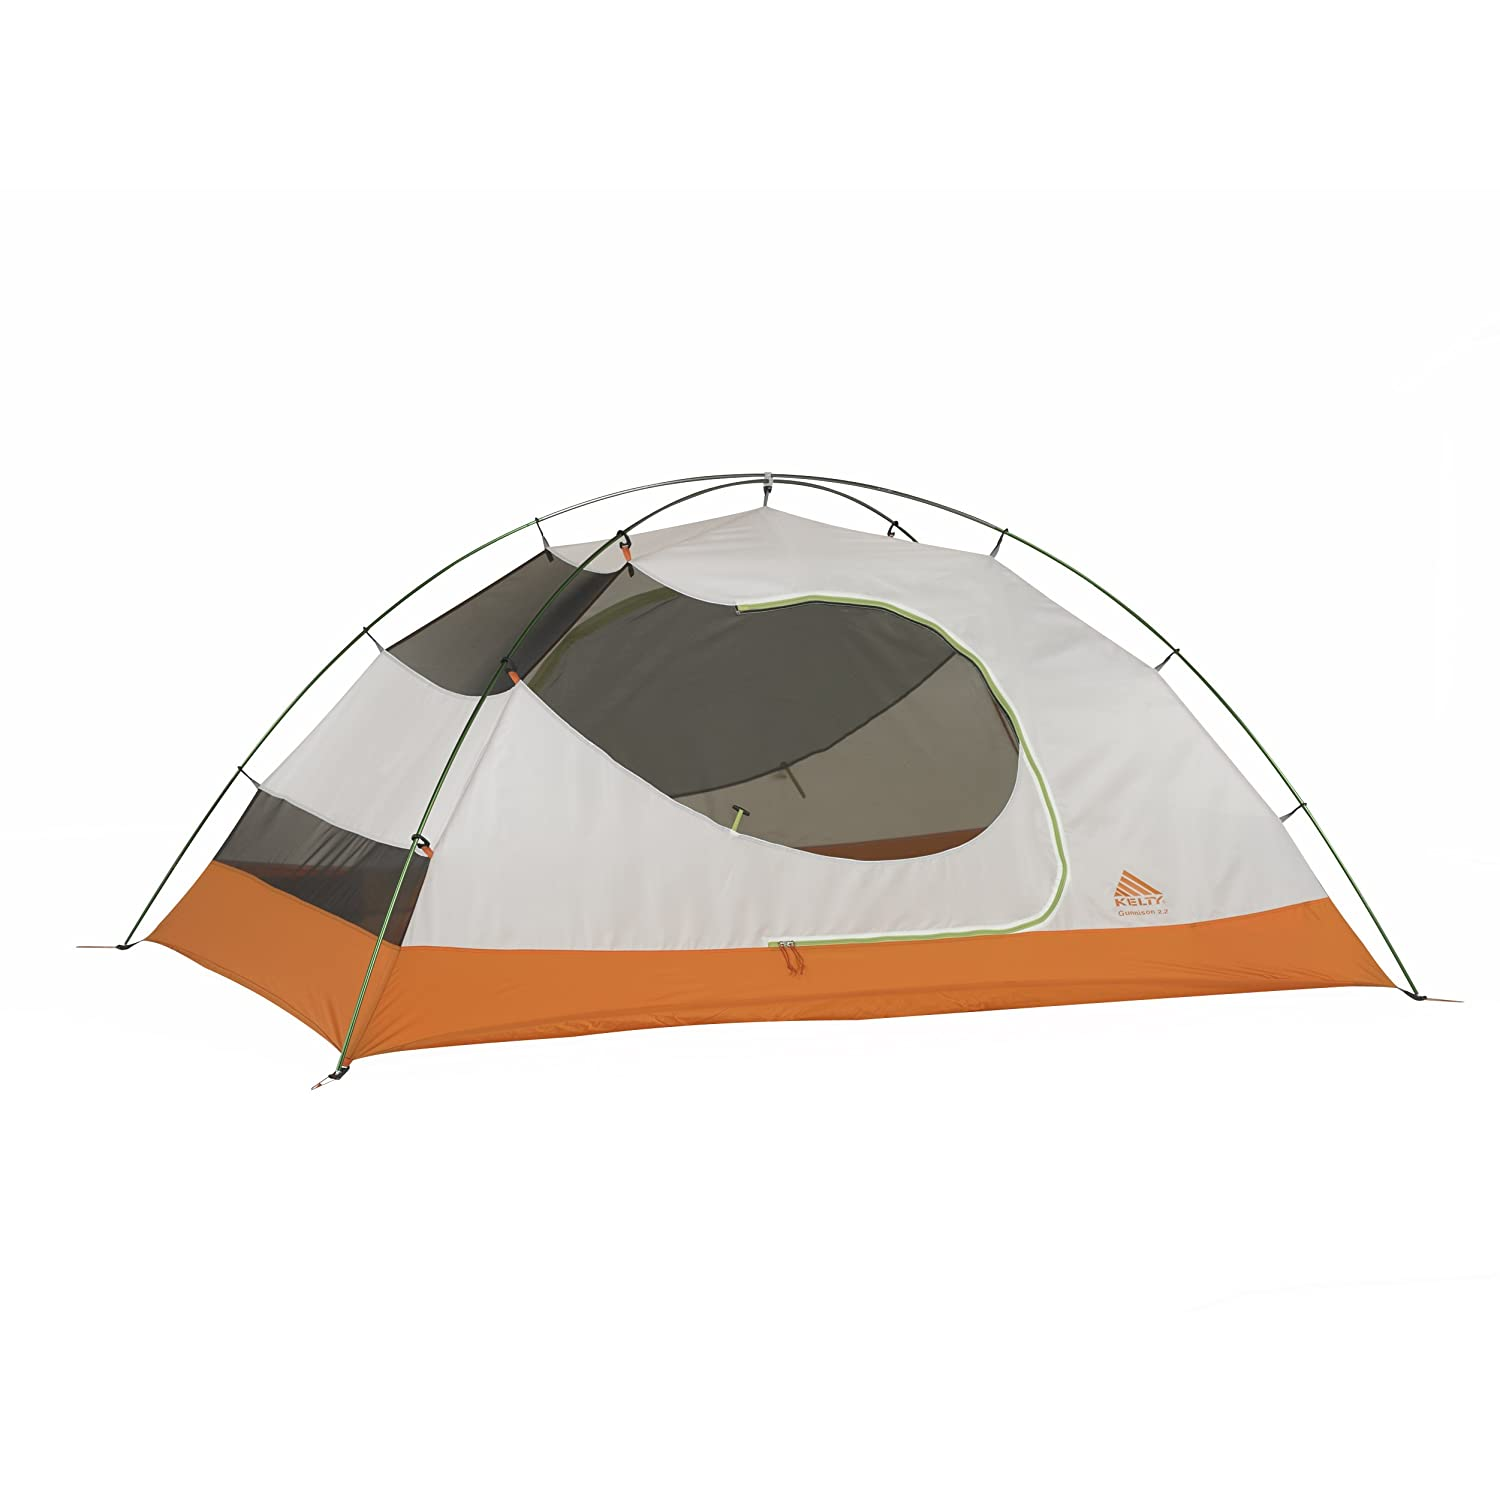 Amazon.com  Kelty Gunnison 3.2 Tent 3-Person  Backpacking Tents  Sports u0026 Outdoors  sc 1 st  Amazon.com & Amazon.com : Kelty Gunnison 3.2 Tent 3-Person : Backpacking Tents ...